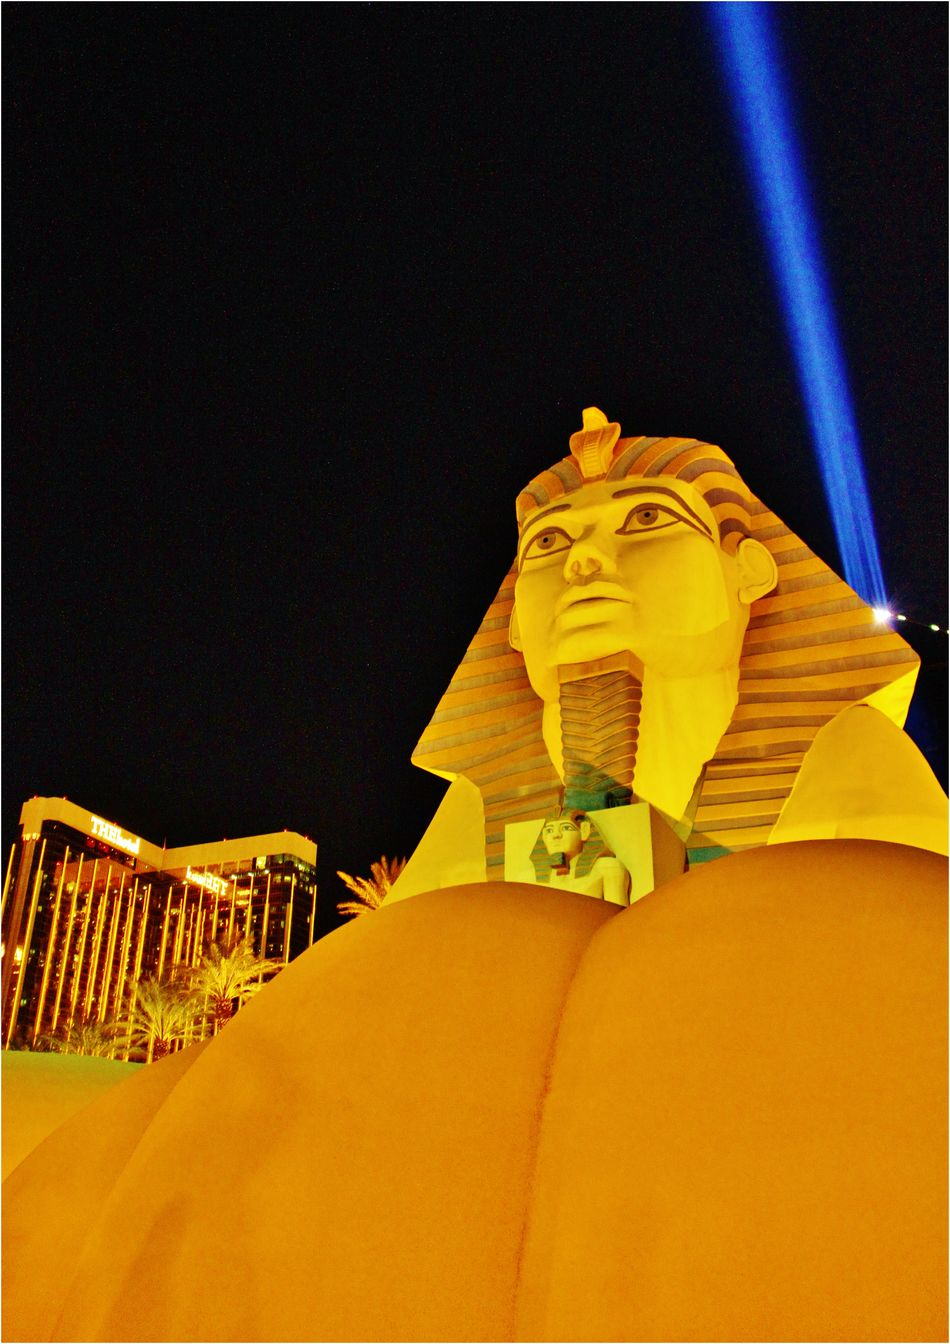 Luxor Las Vegas a replica of the Great Sphinx of Giza and a pyramid shaped building with a spotlight. America Attractions Baccarat Black Jack Bugsy Siegel Elvis Presley Frank Sinatra Giza Las Vegas Laserbeam Lighting Up The Night... Luxor Poker Portrait Of America Pyramid Sphinx Travel Photography Trip United States USA Videokino Yellow